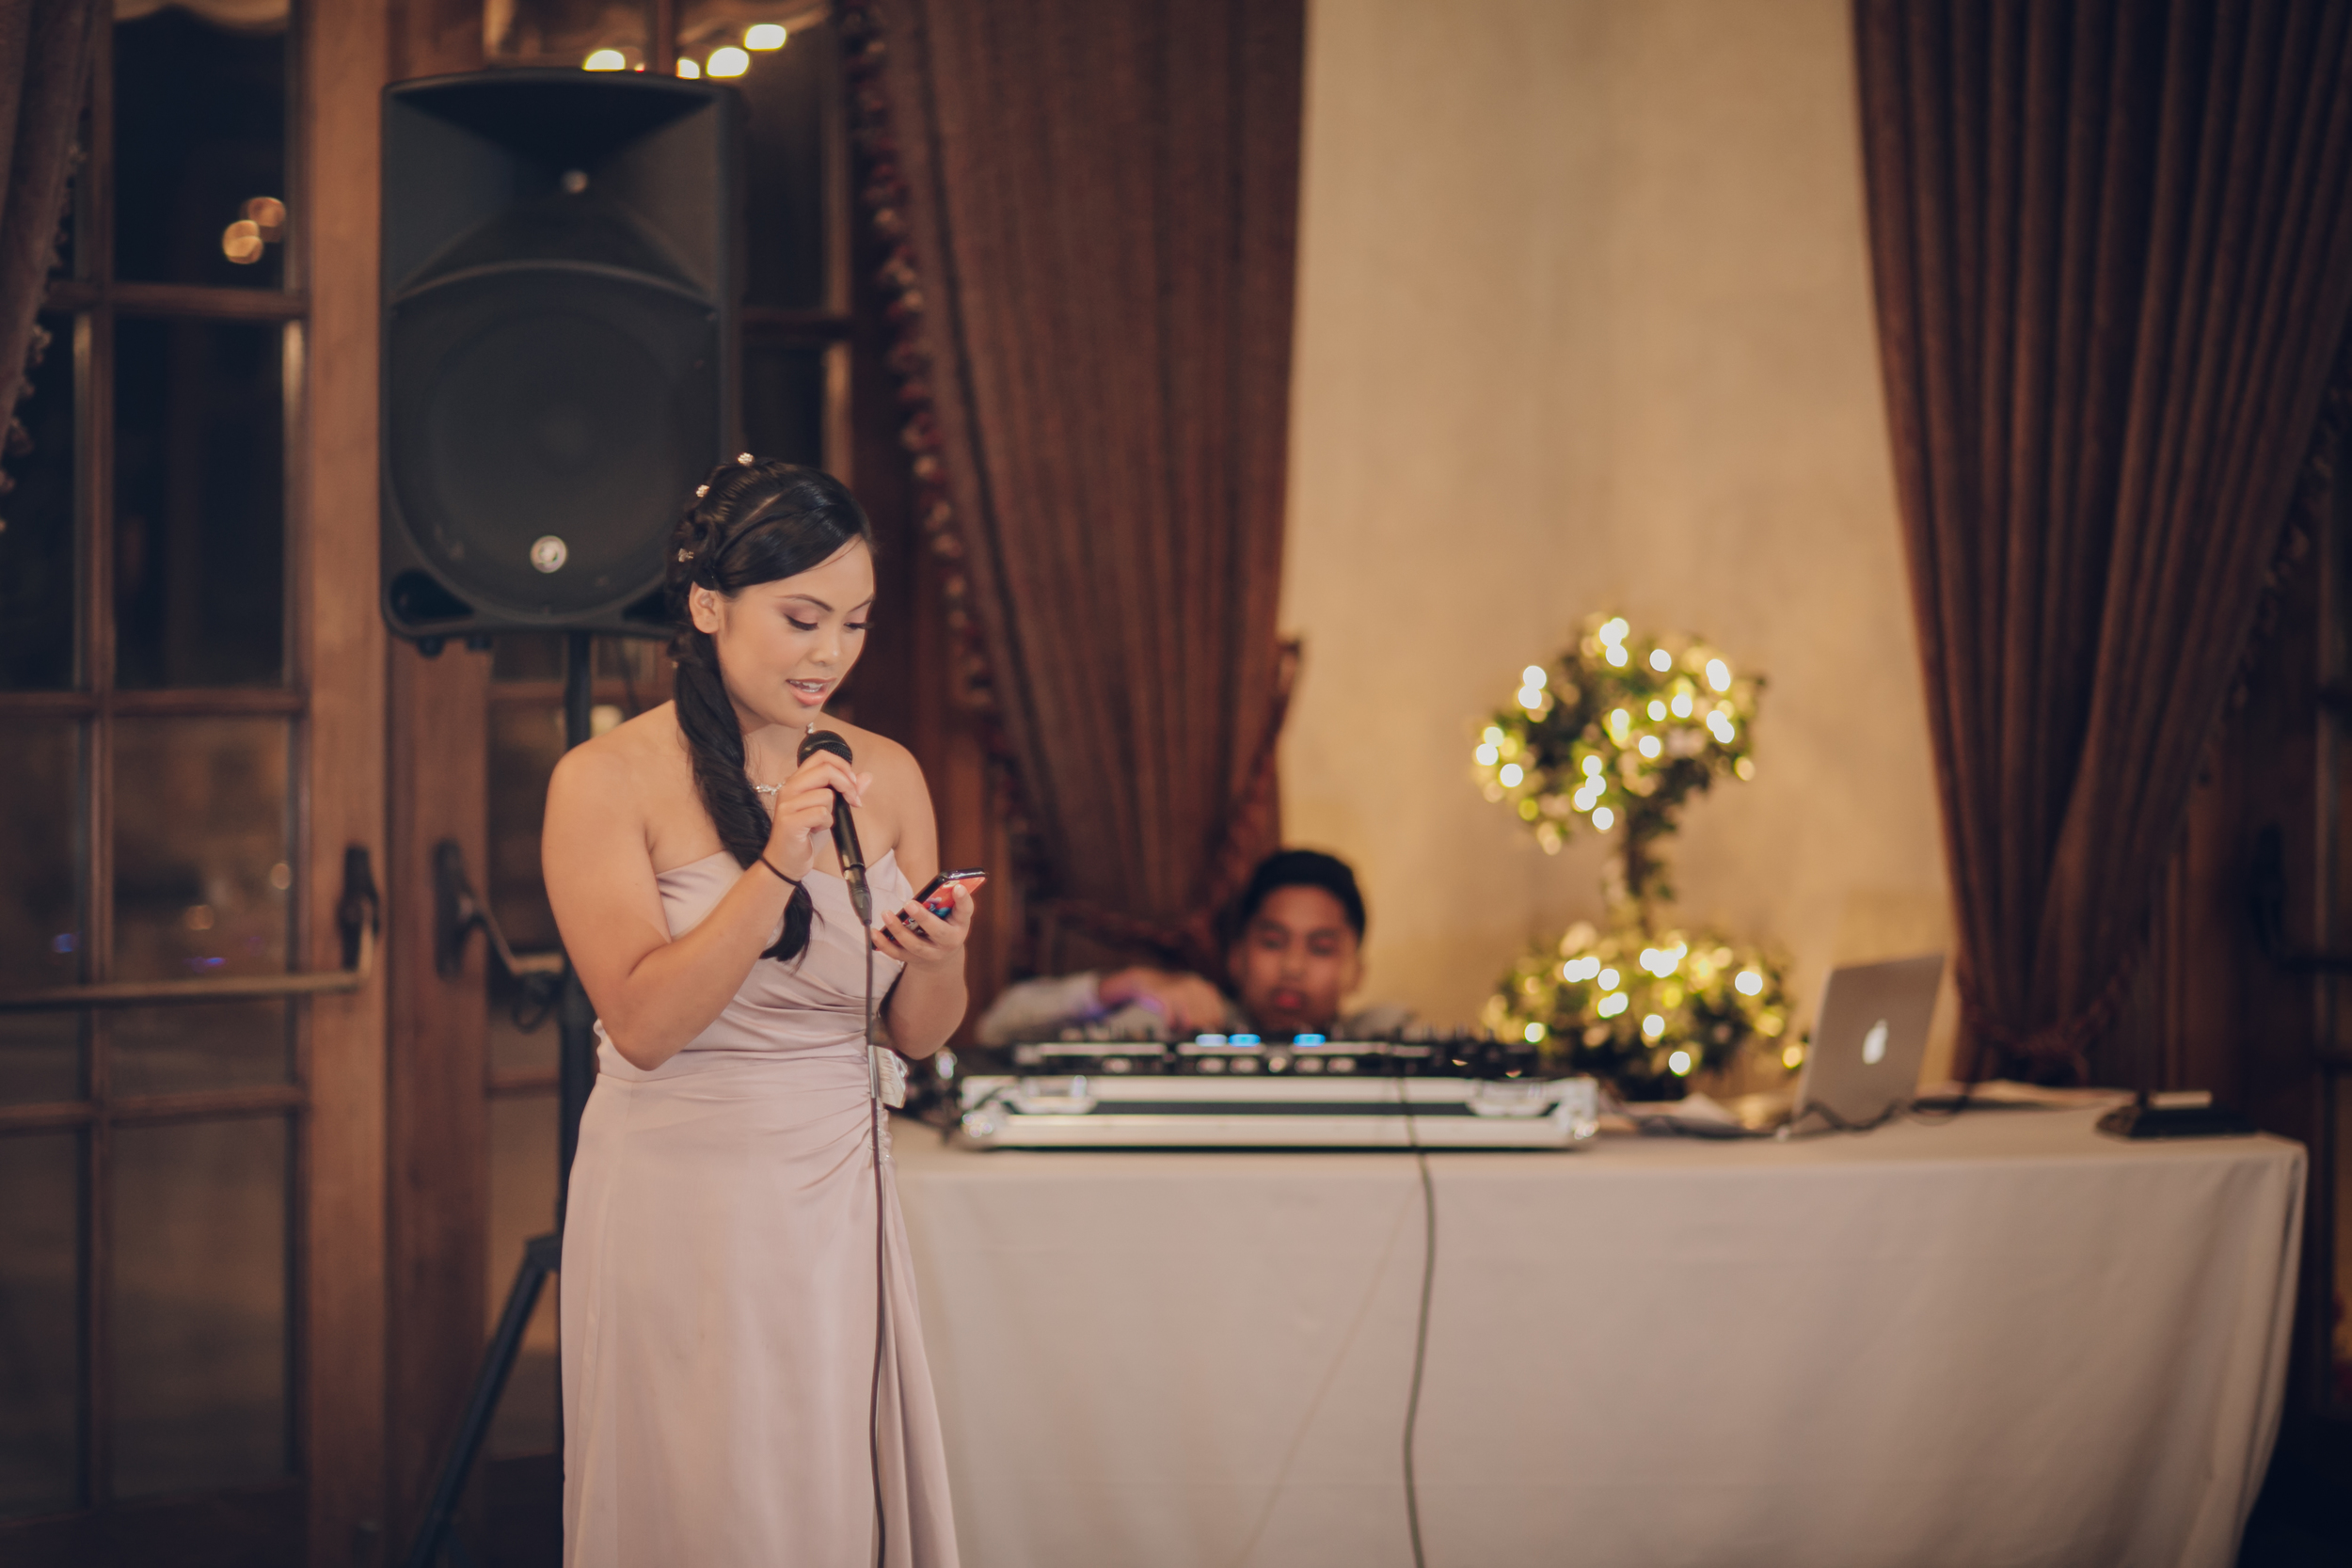 Shiela + Lester's Wedding 9-30-15 268.jpg